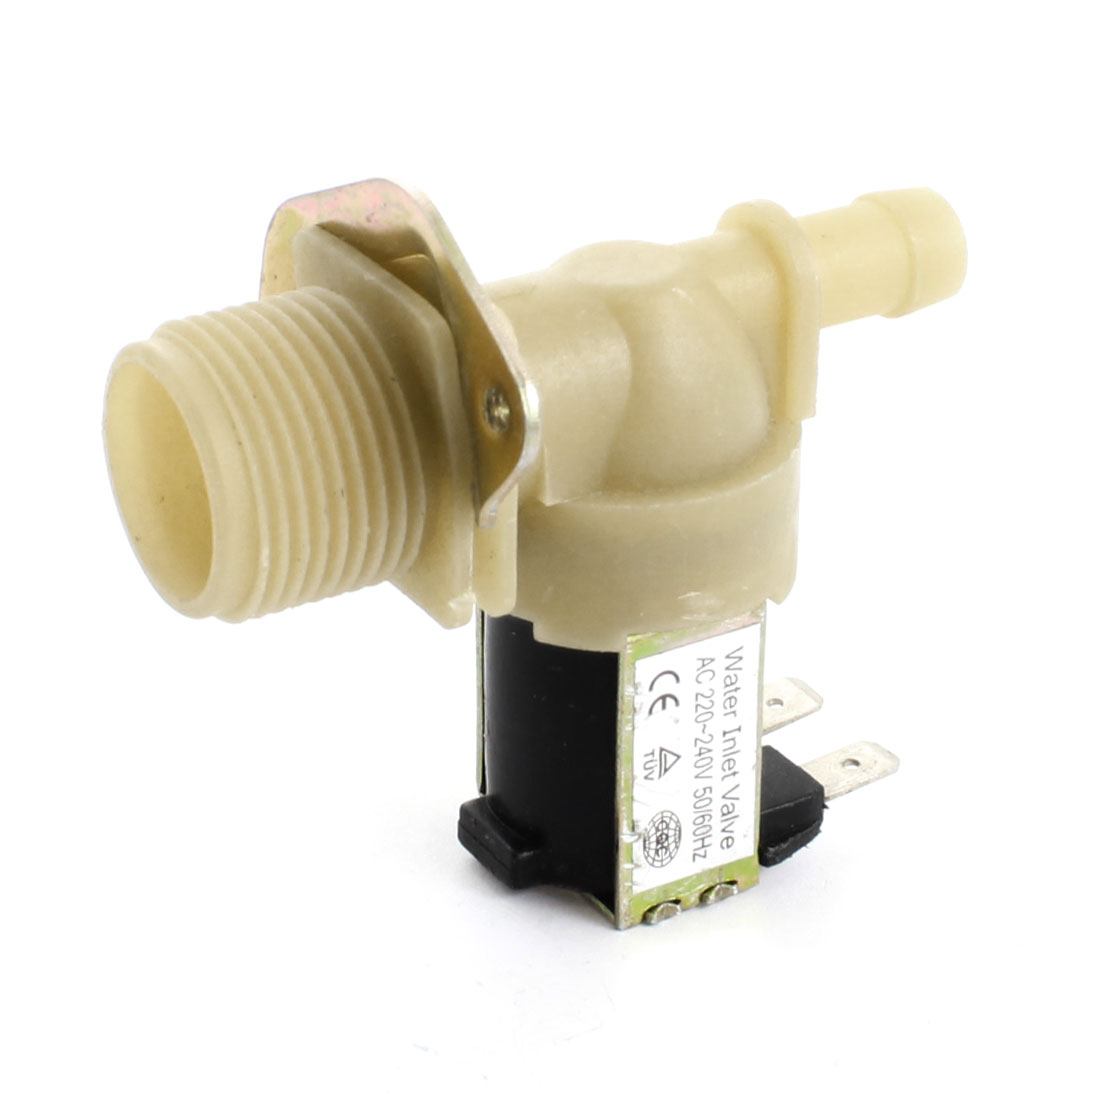 26mm Male Thread Water Inlet Solenoid Valve AC 220-240V for Washing Machine